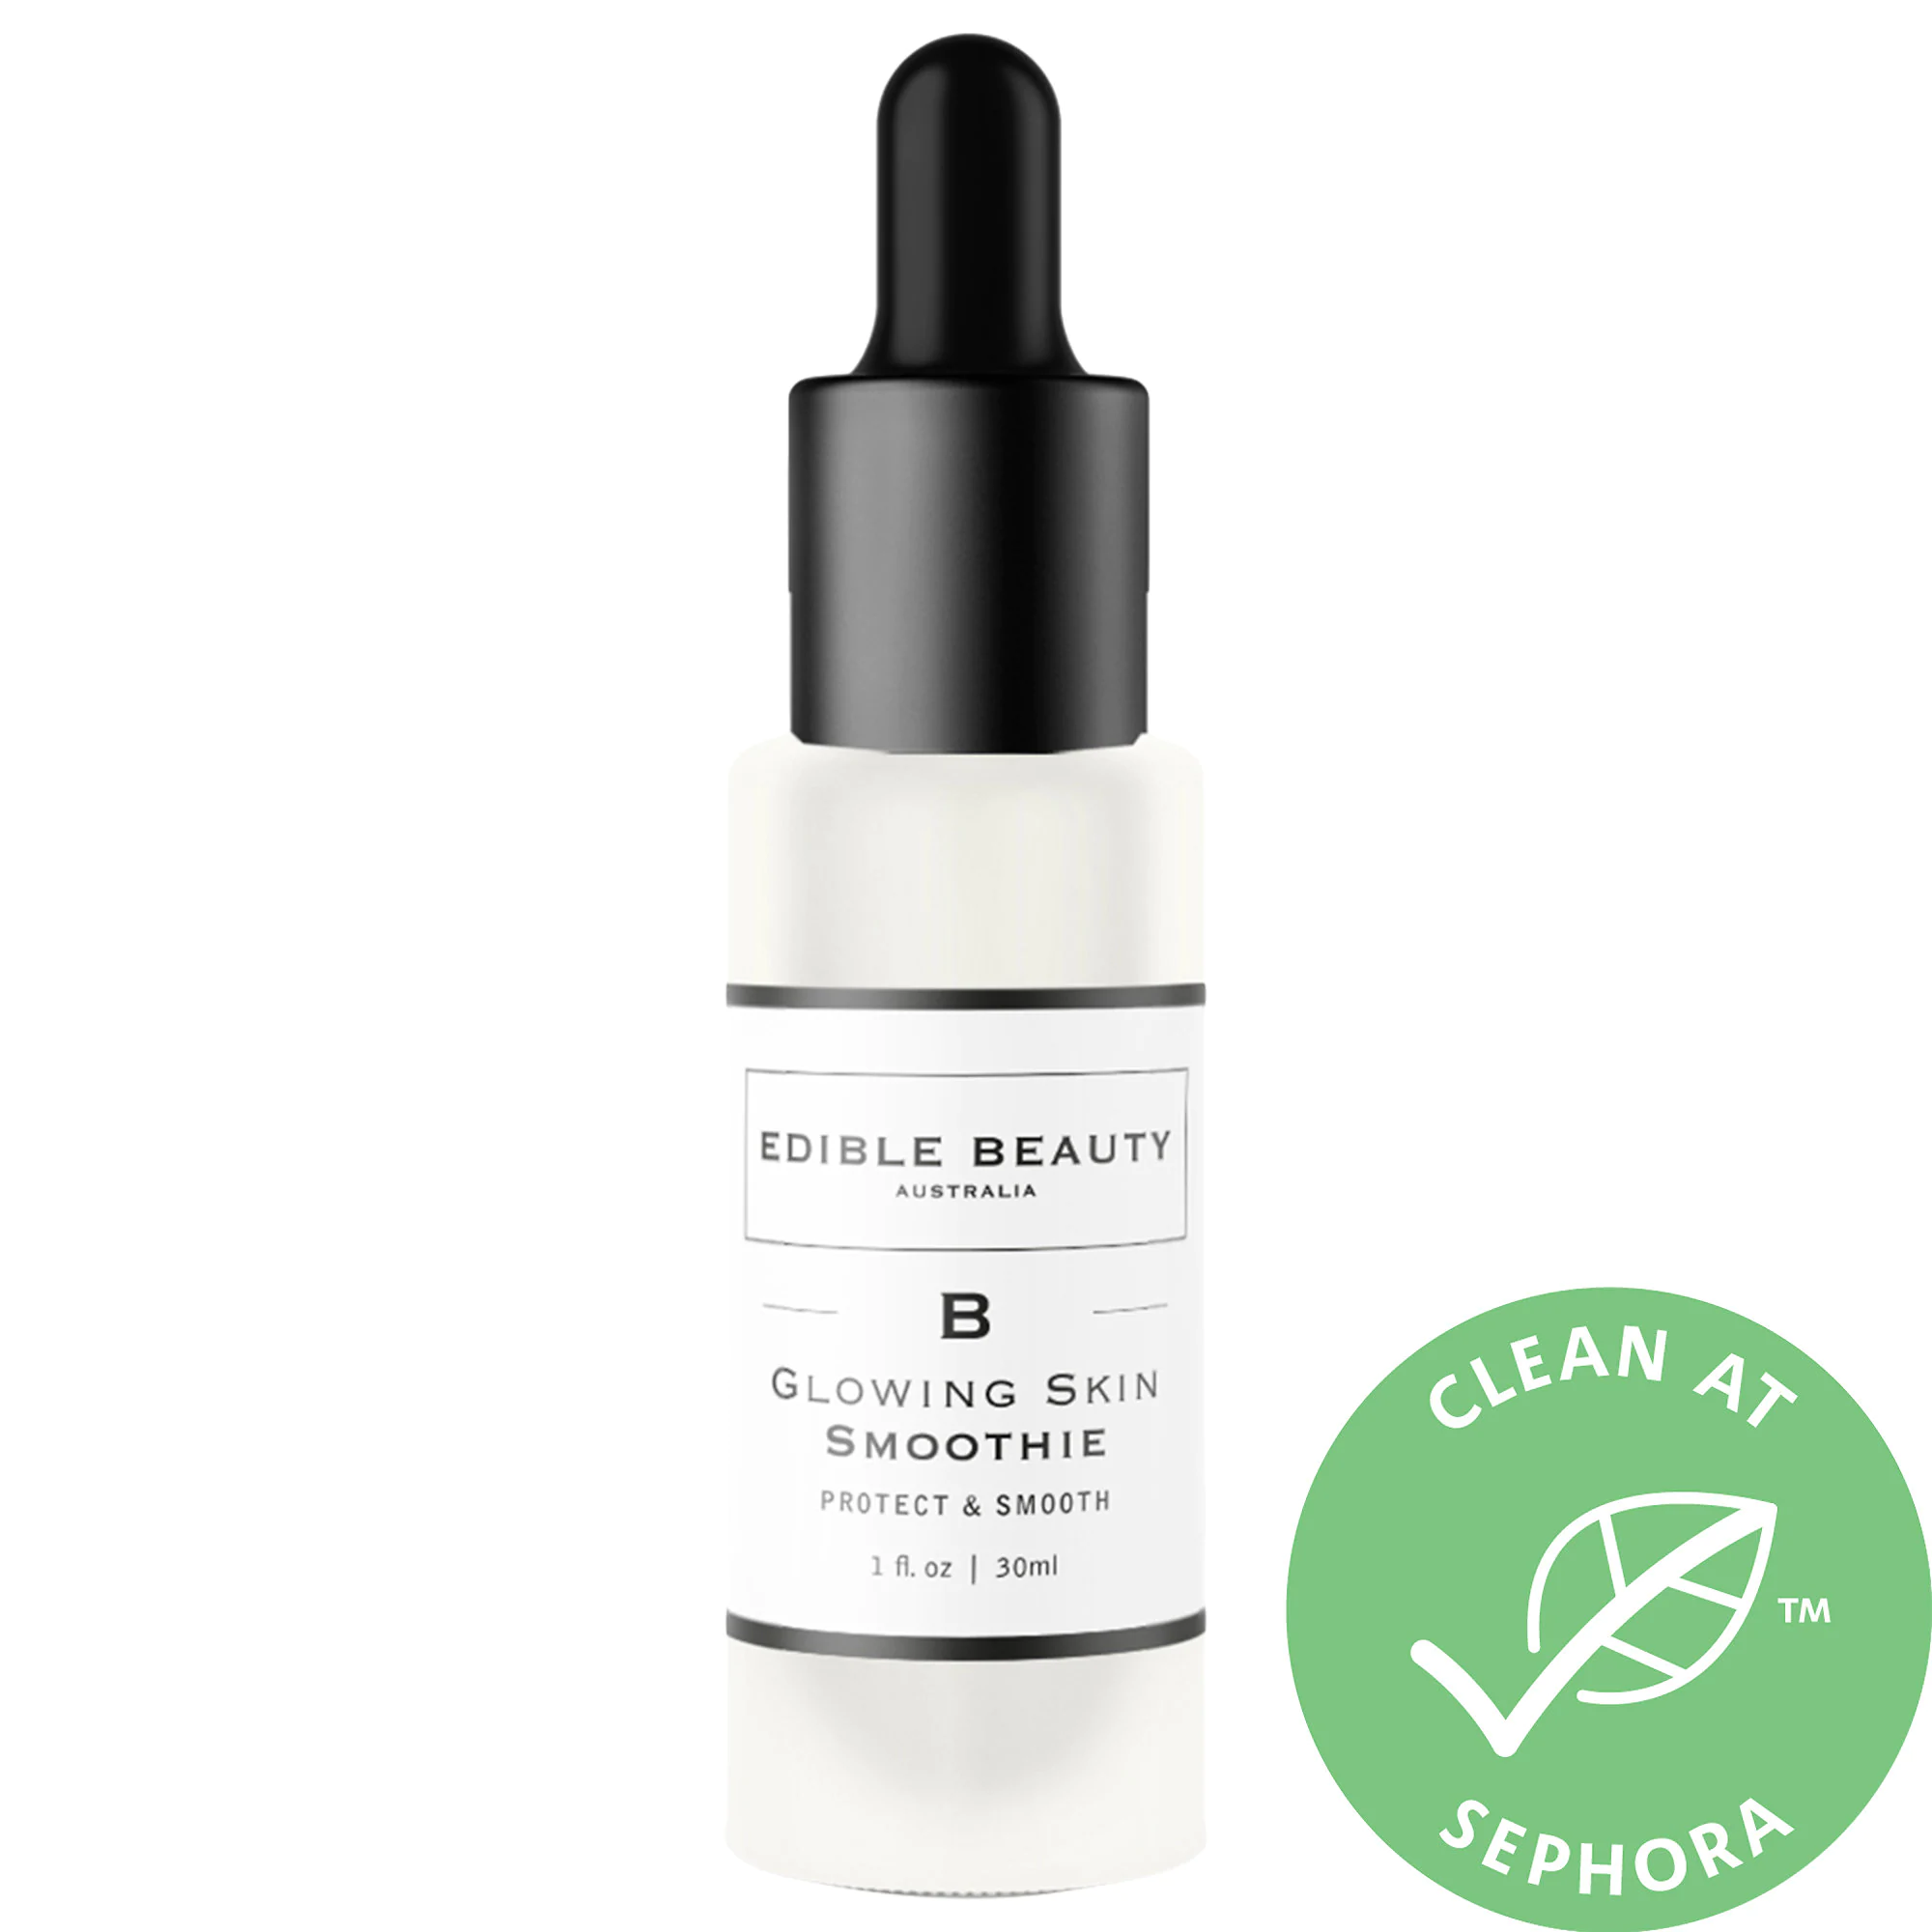 Edible Beauty Glowing Skin Smoothie Serum Protect And Smooth